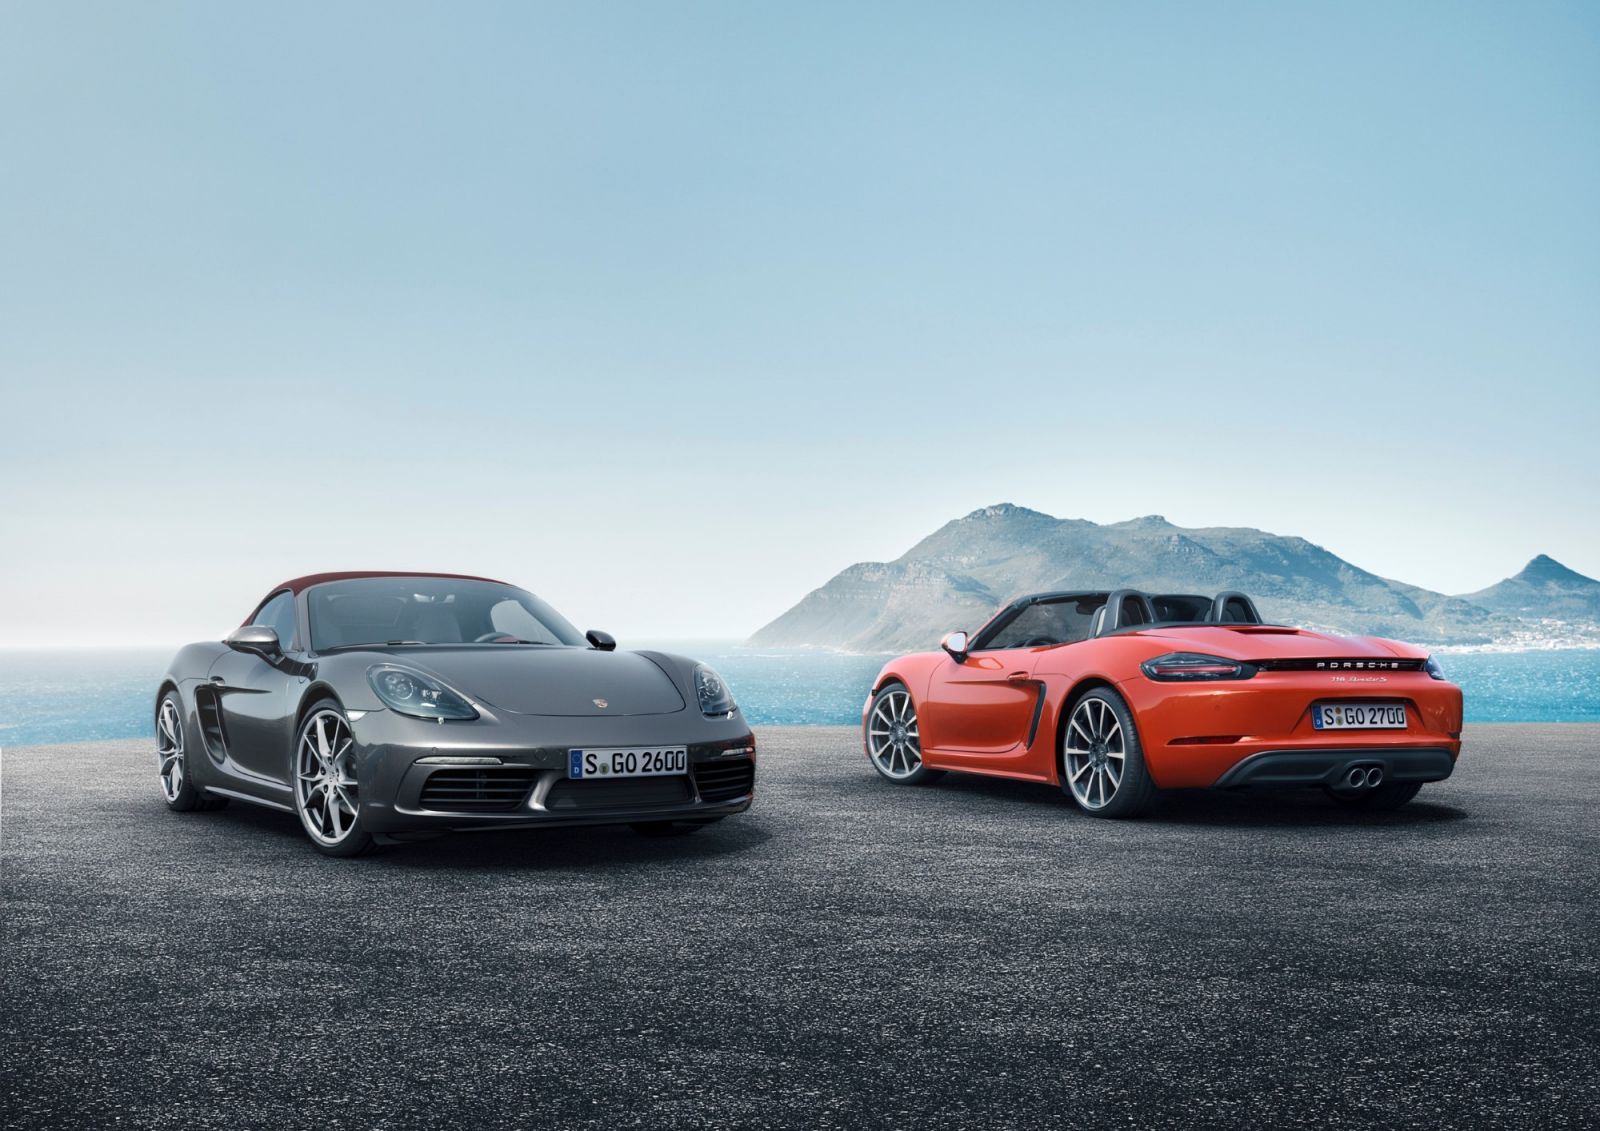 Porsche Recalls 911 And 718 For Separate Airbag And Fuel Line Issues